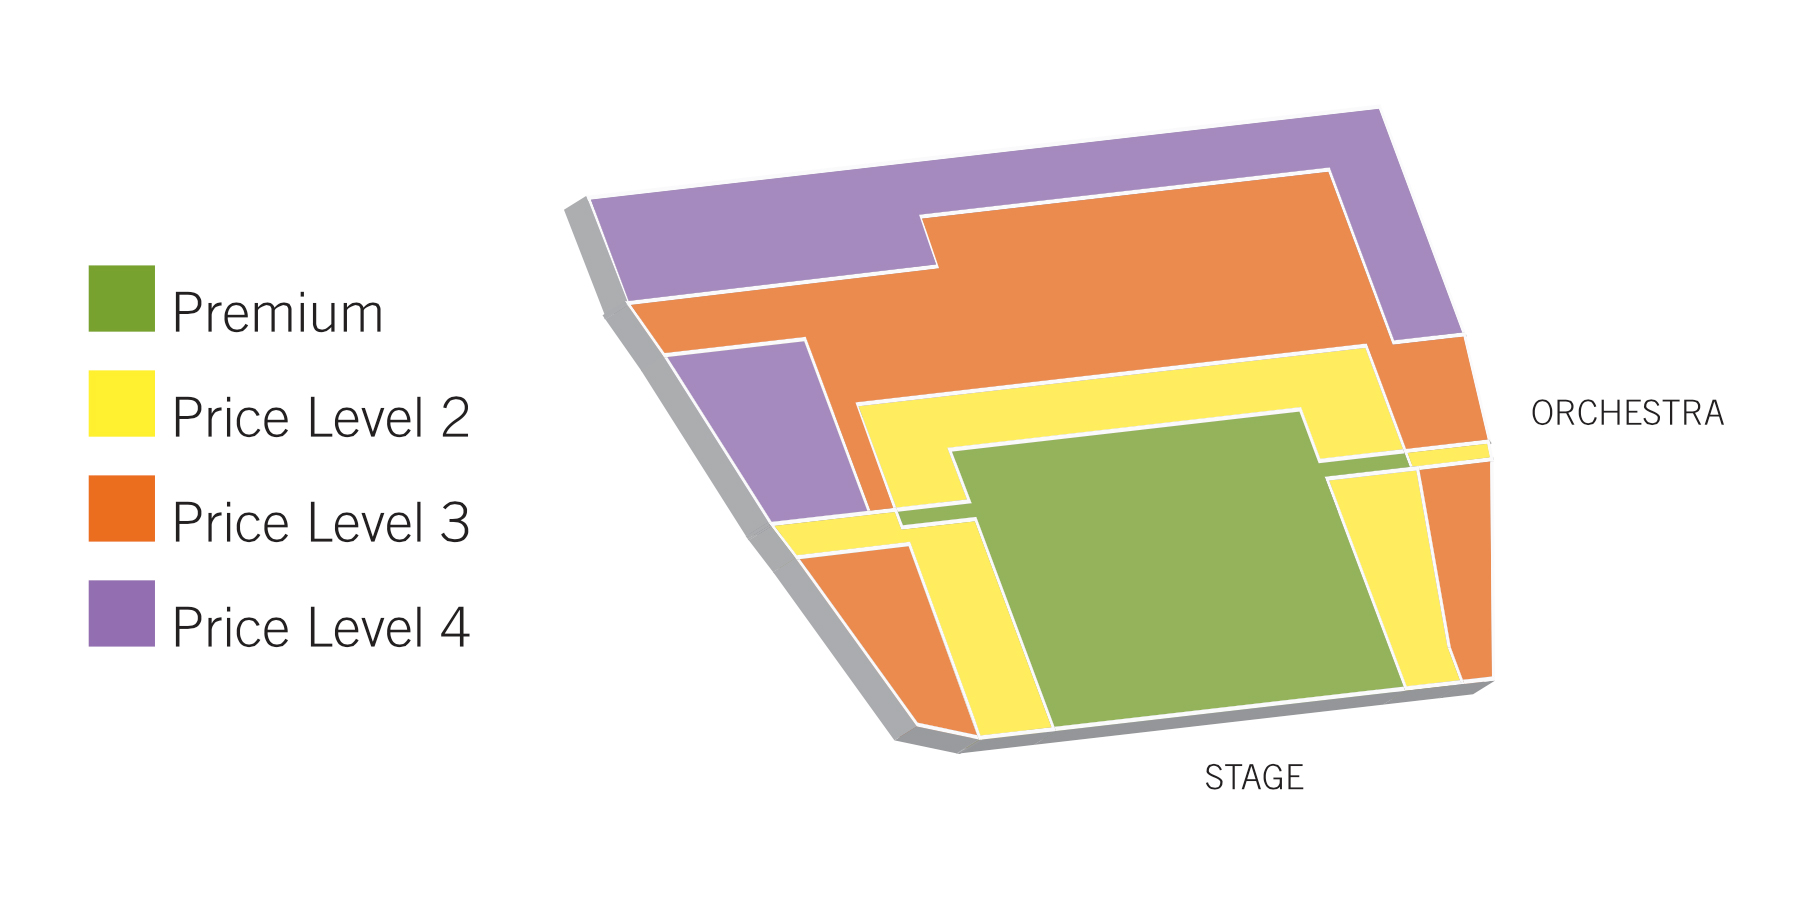 Seating charts bcpa chart jones hall also for the performing arts houston tickets schedule rh goldstar